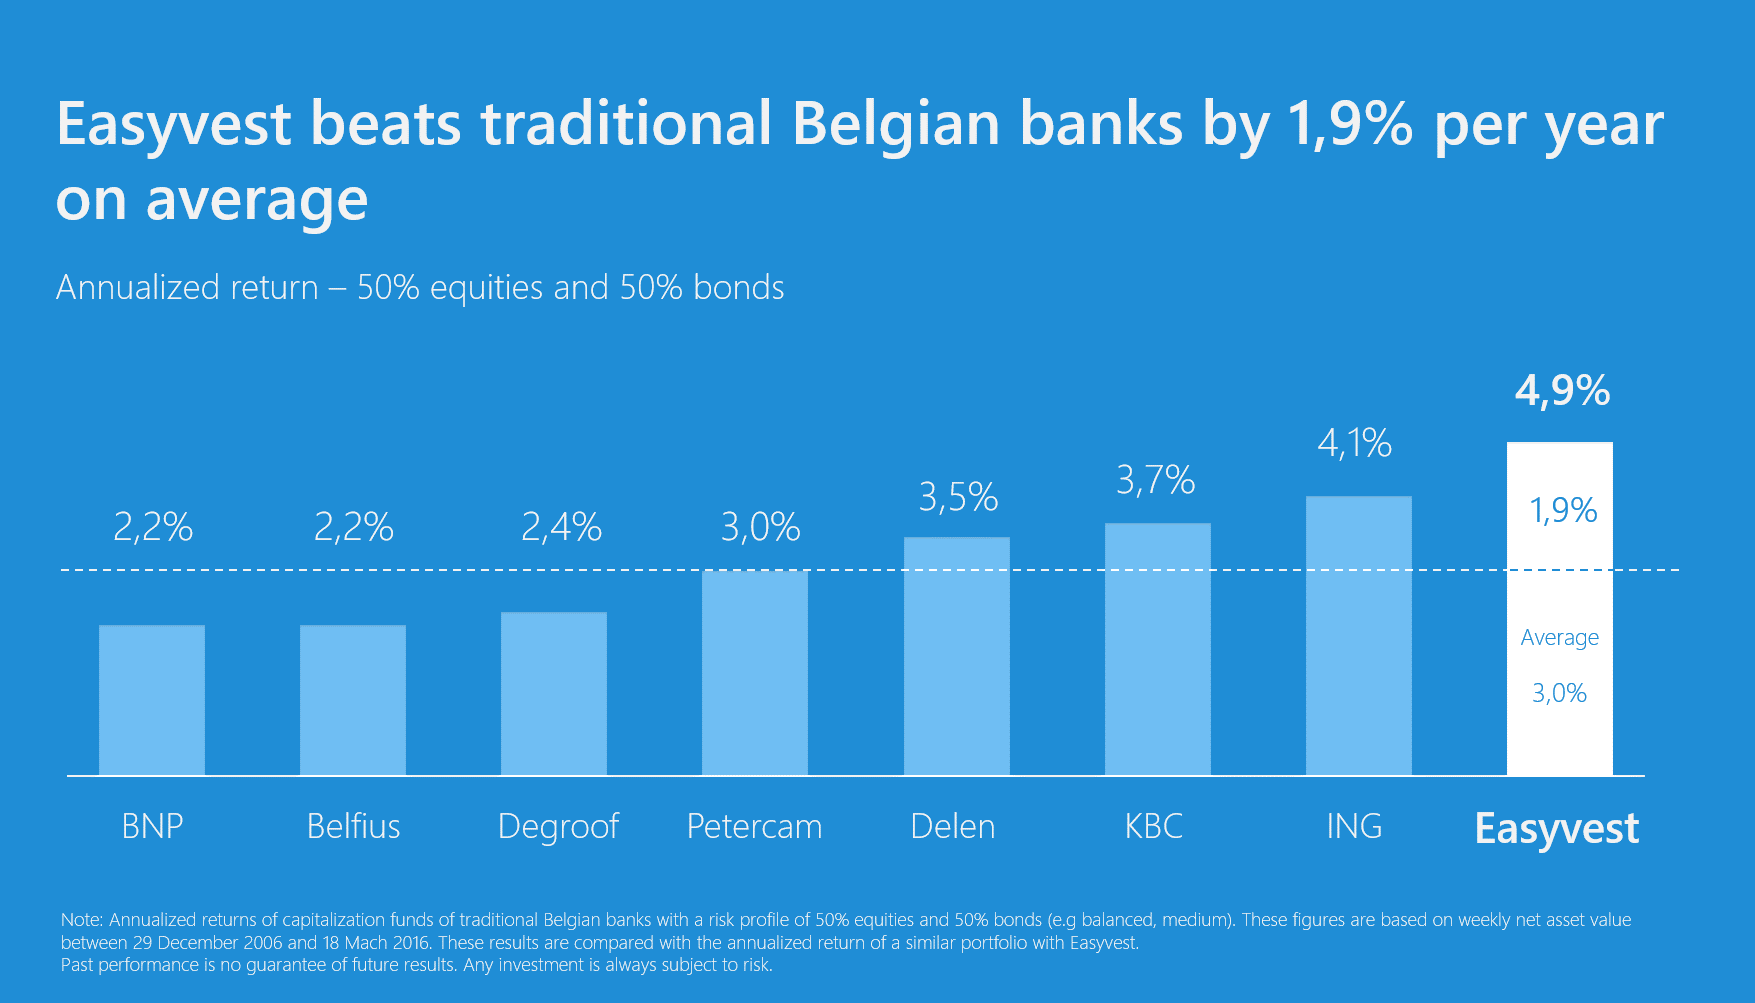 Passive investing beats Belgian banks by 1,9% p.a